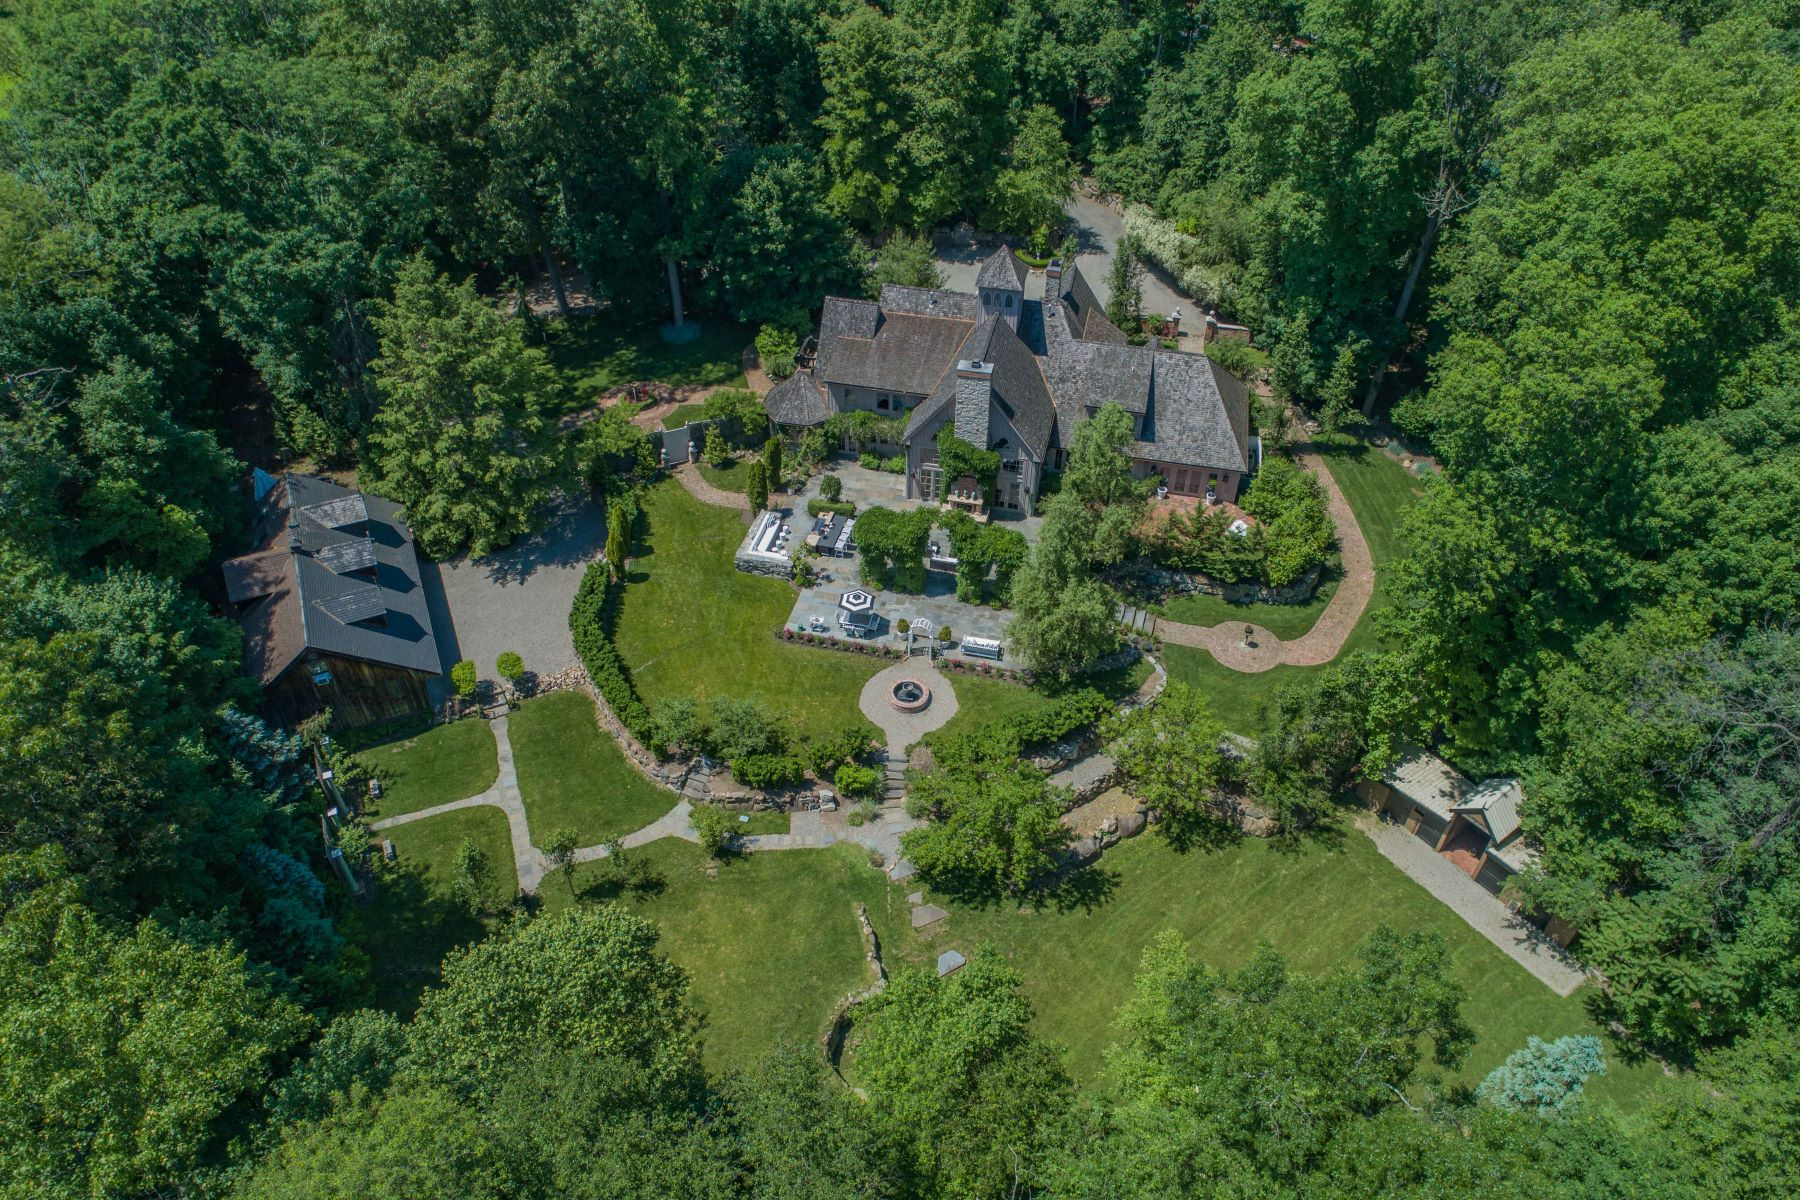 Single Family Homes for Sale at PRIVATE 3 ACRE COMPOUND 551 Campgaw Rd Mahwah, New Jersey 07430 United States